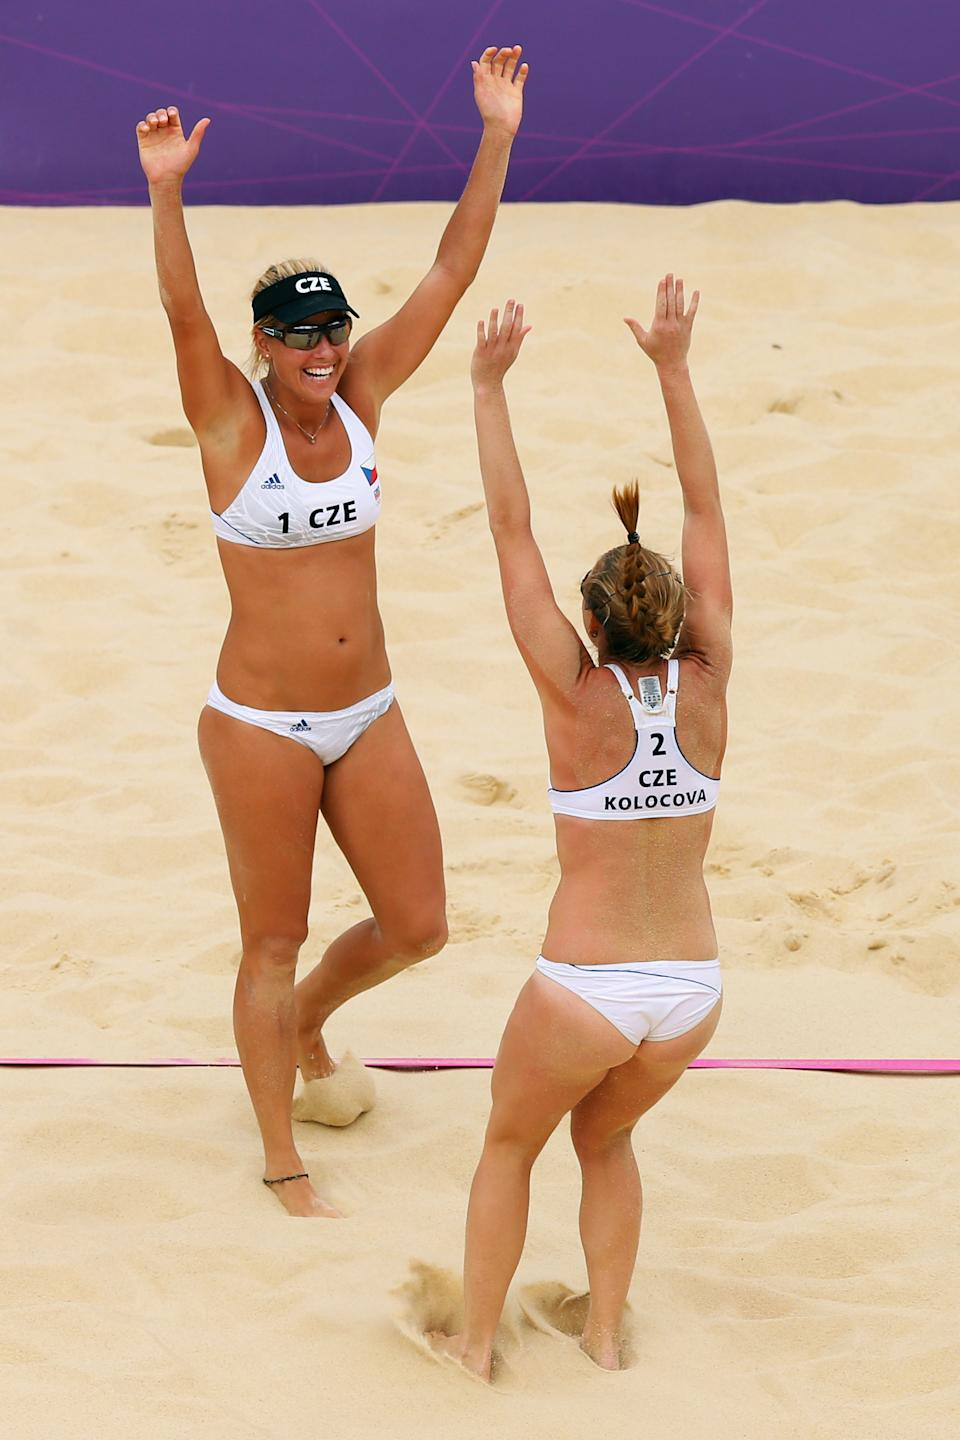 LONDON, ENGLAND - JULY 28: Kristyna Kolocova and Marketa Slukova of Czech Republic celebrate their victory after the Women's Beach Volleyball Preliminary Round against Austria on Day 1 of the London 2012 Olympic Games at Horse Guards Parade on July 28, 2012 in London, England. (Photo by Ryan Pierse/Getty Images)